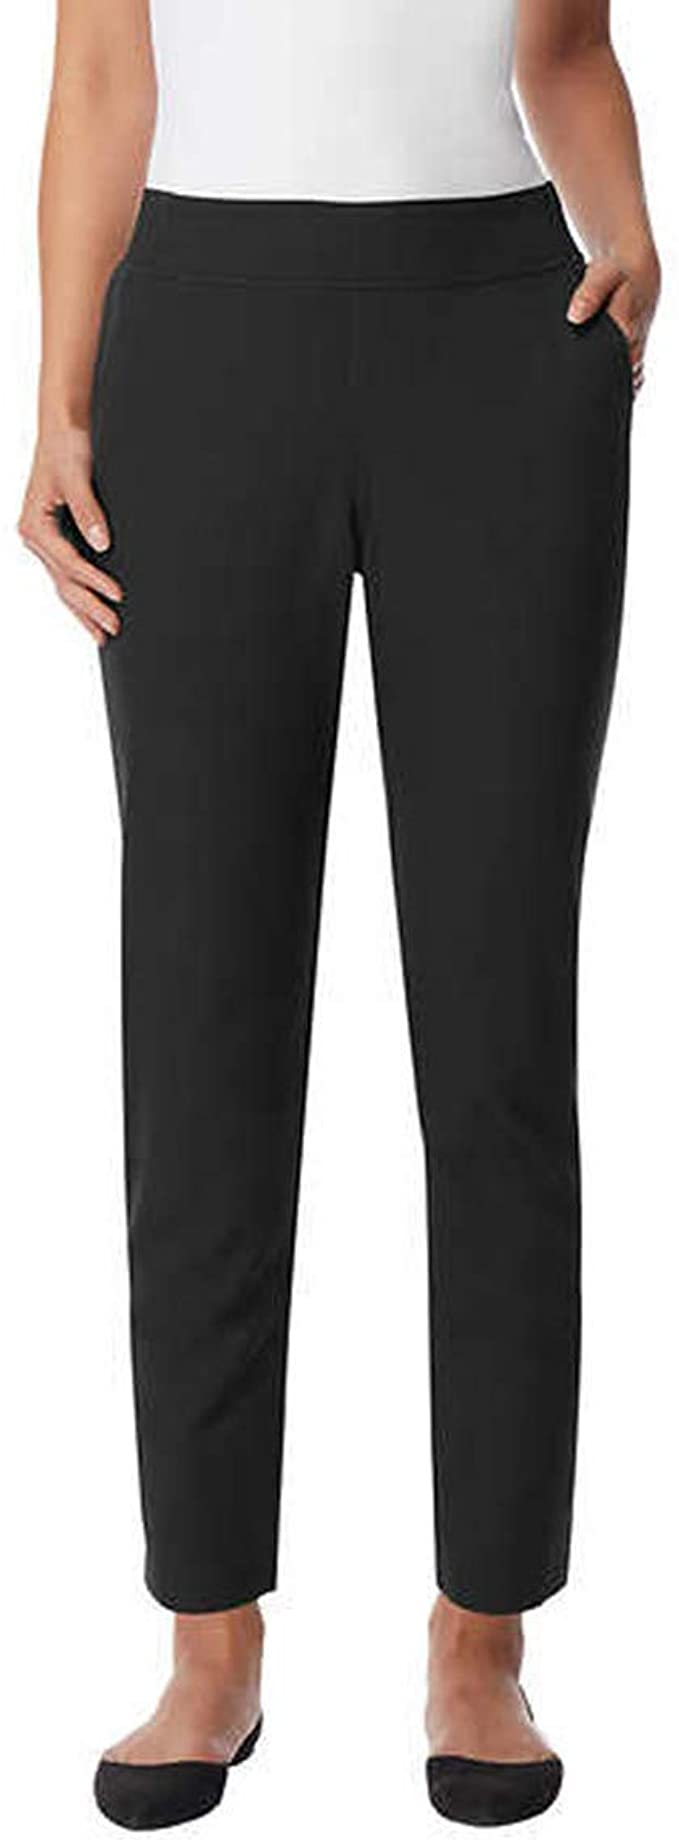 VIVIAN & VINCENT Ladies' Soft Comfort Pants